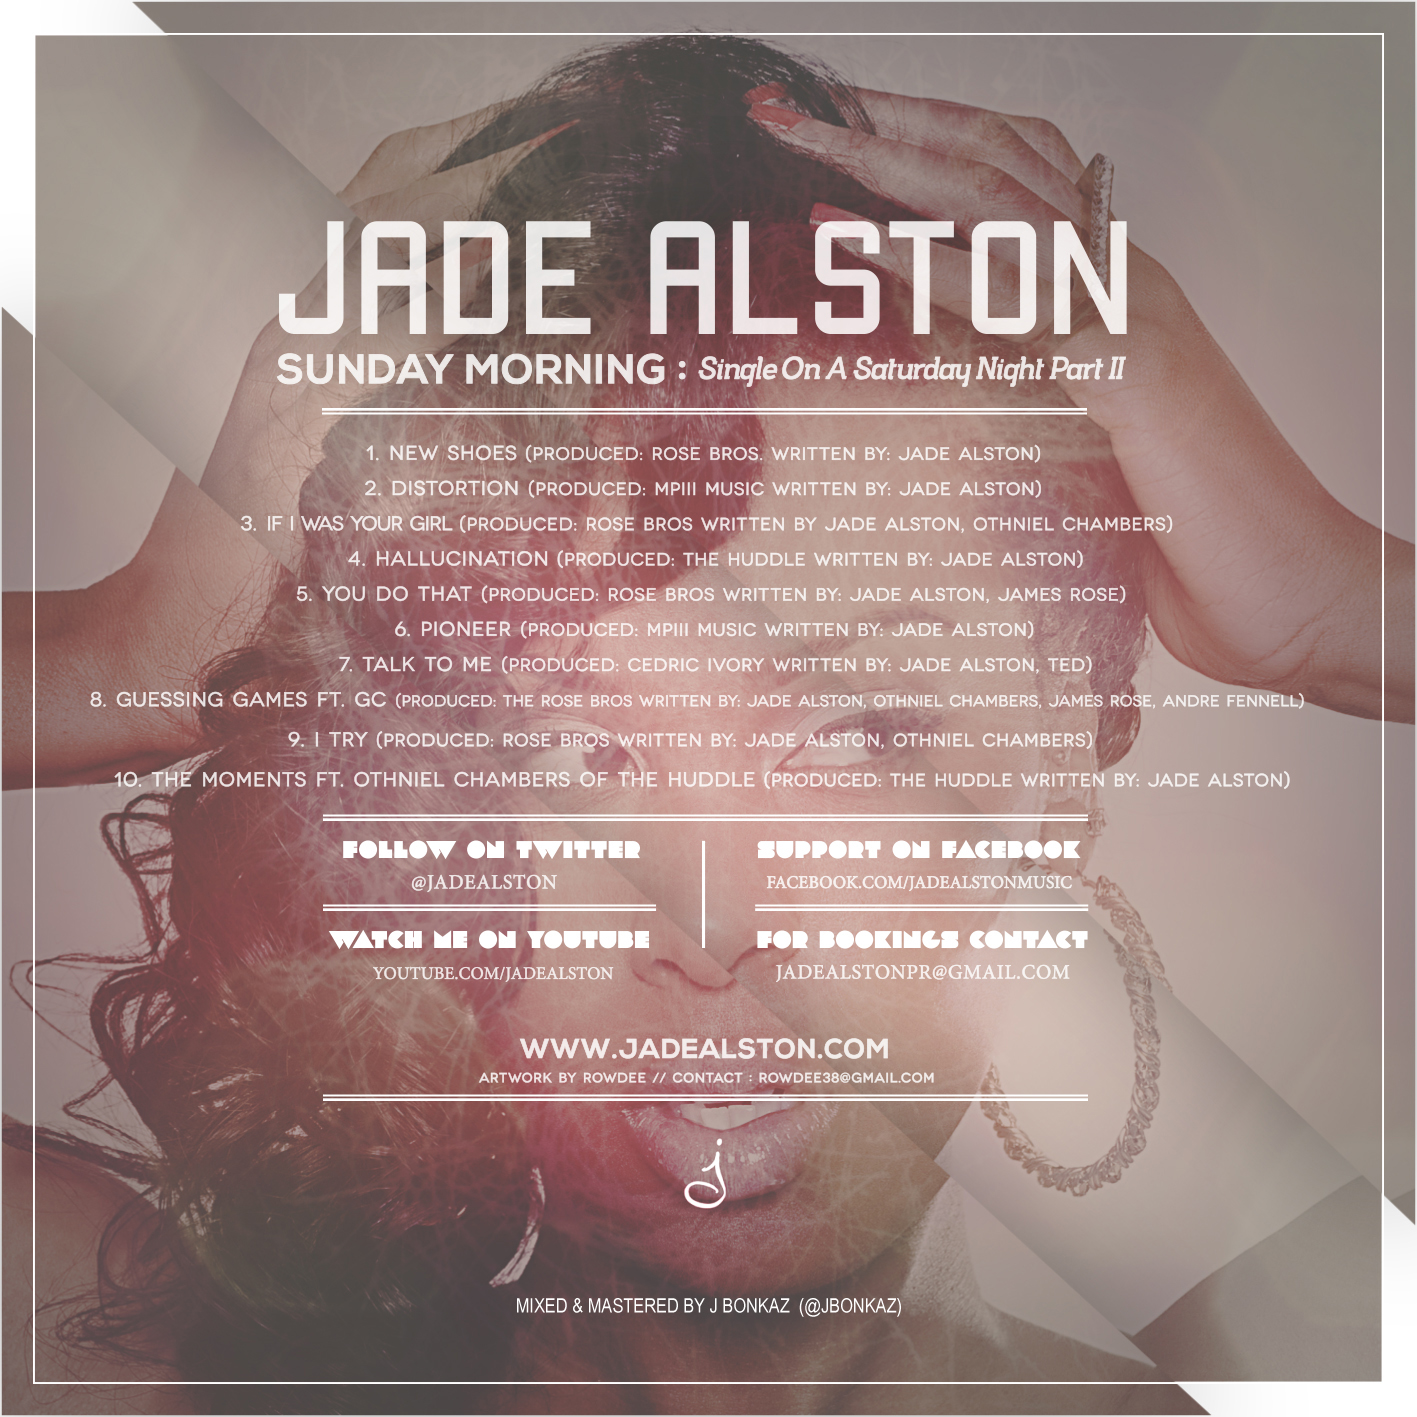 jade-alston-sunday-morning-single-on-a-saturday-night-pt-2-ep-tracklist-HHS1987-2013 Jade Alston (@JadeAlston) - Sunday Morning: Single on A Saturday Night Pt. 2 (EP)